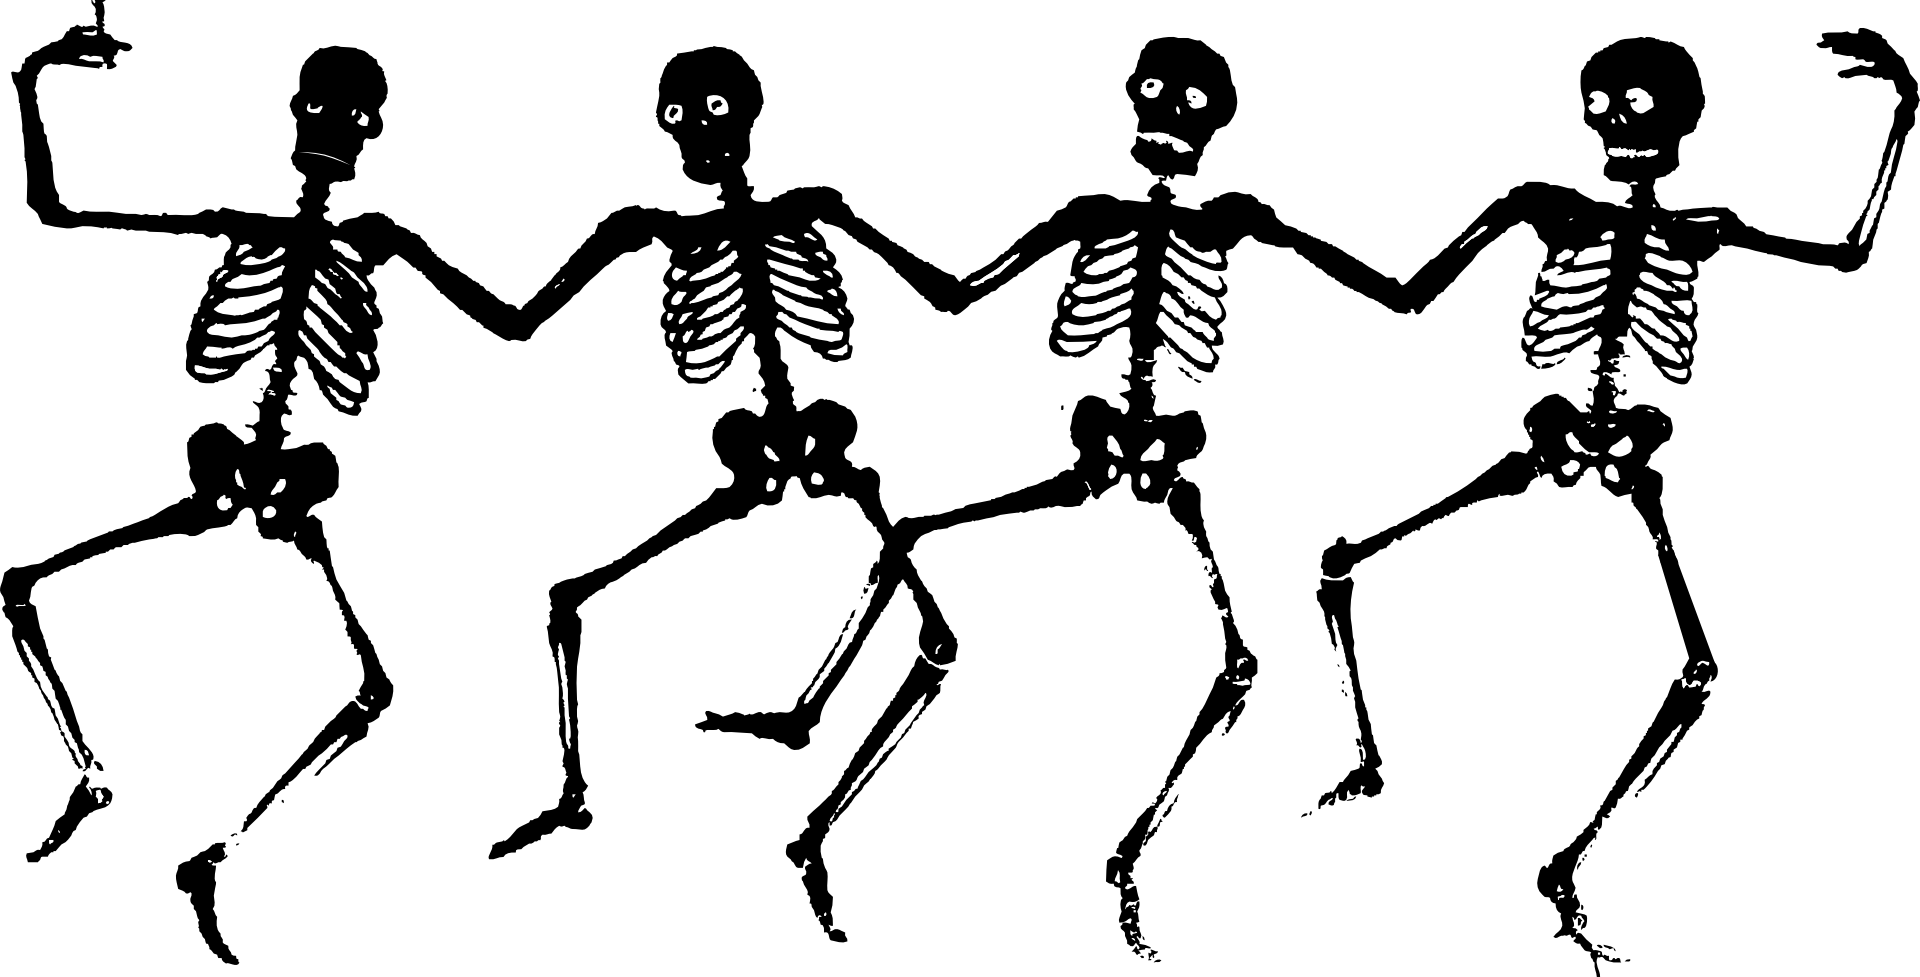 skeletons, human, dancing